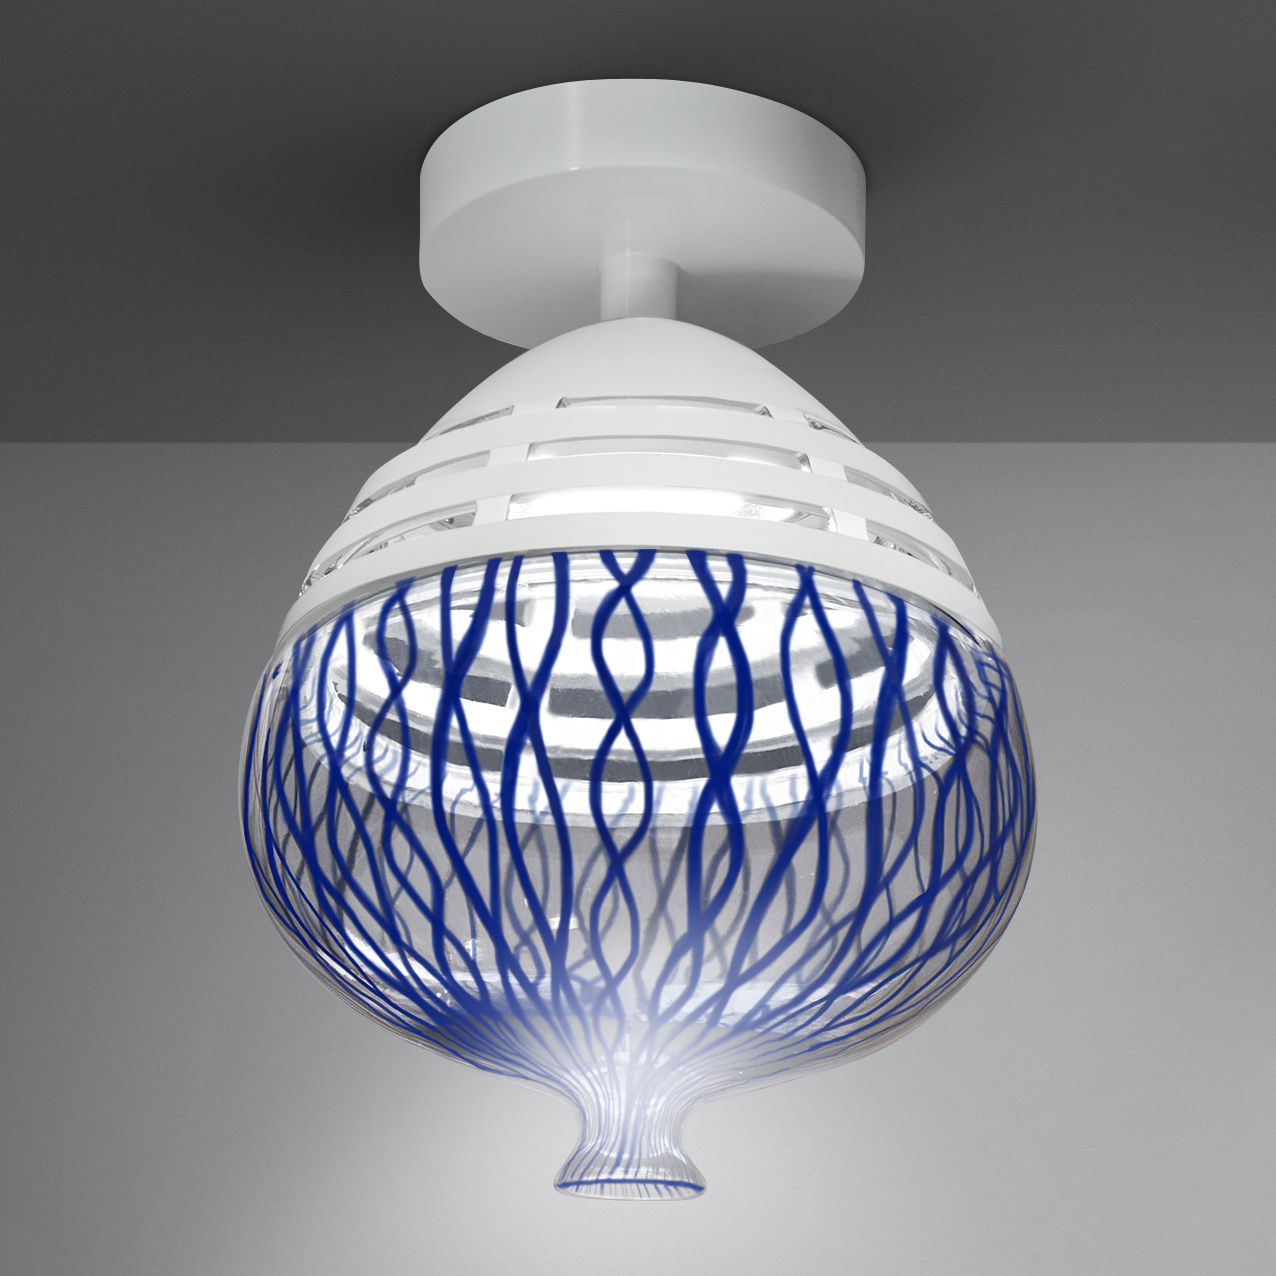 Invero Led Ceiling Light 23 X H32 Cm Blown Glass